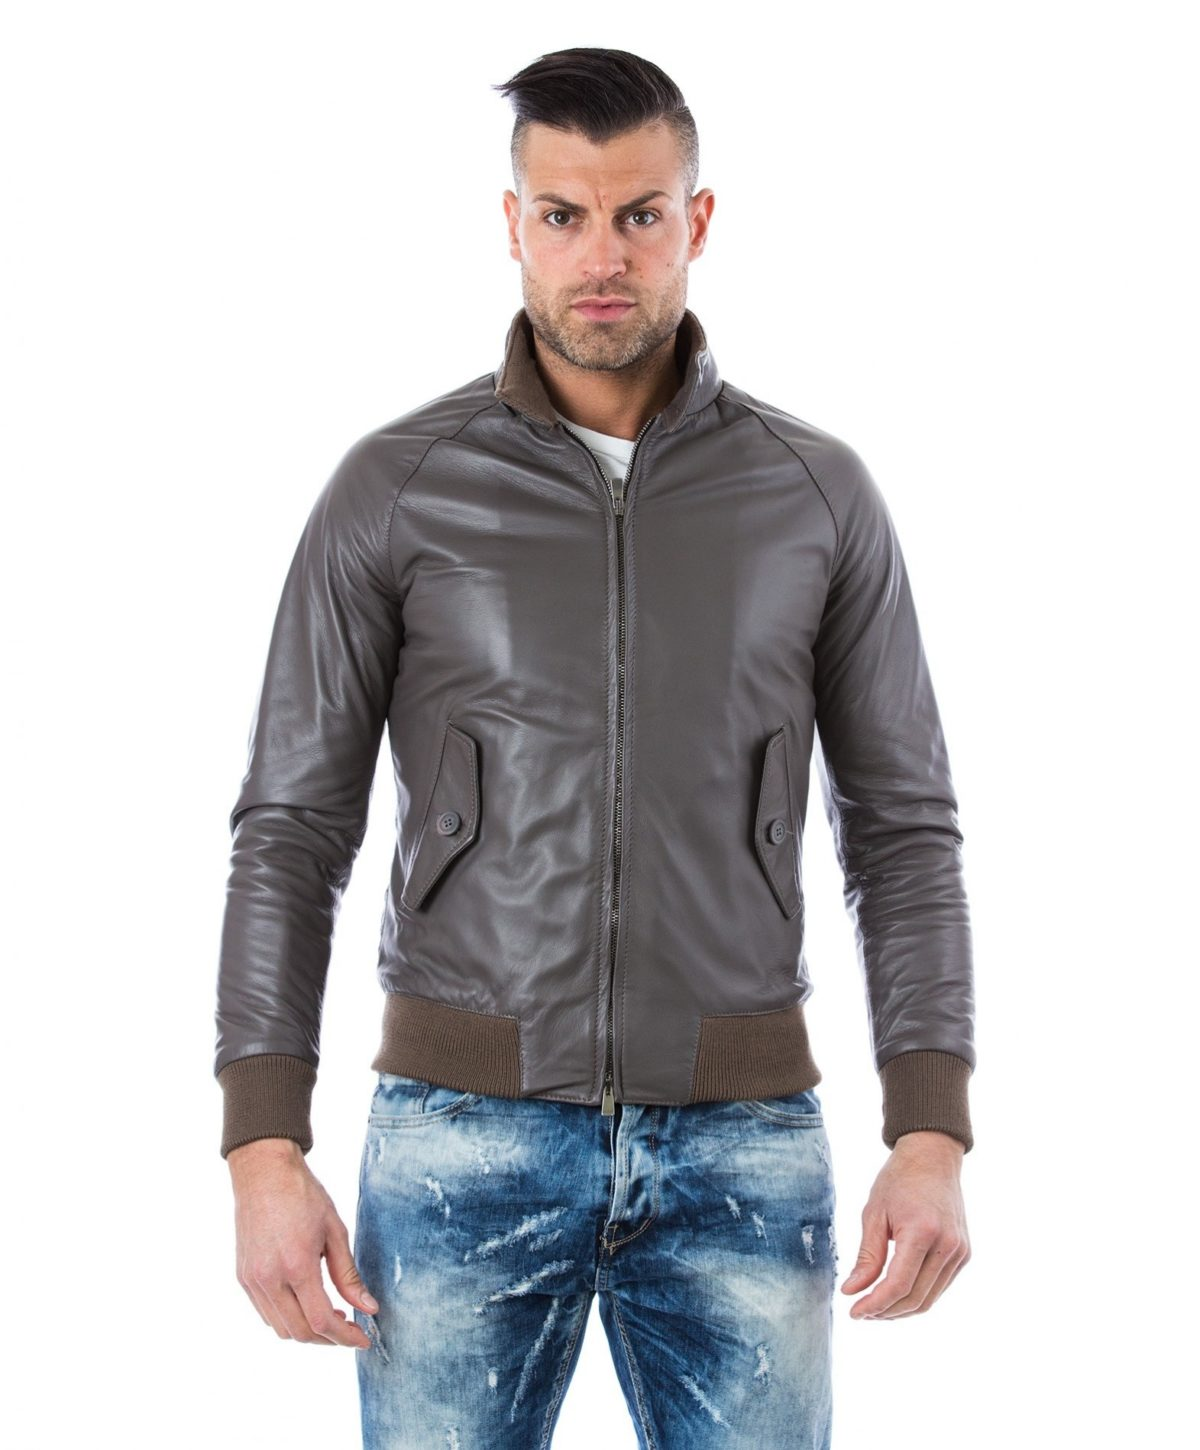 man-leather-jacket-lamb-leather-style-bomber-central-zip-black-color-br